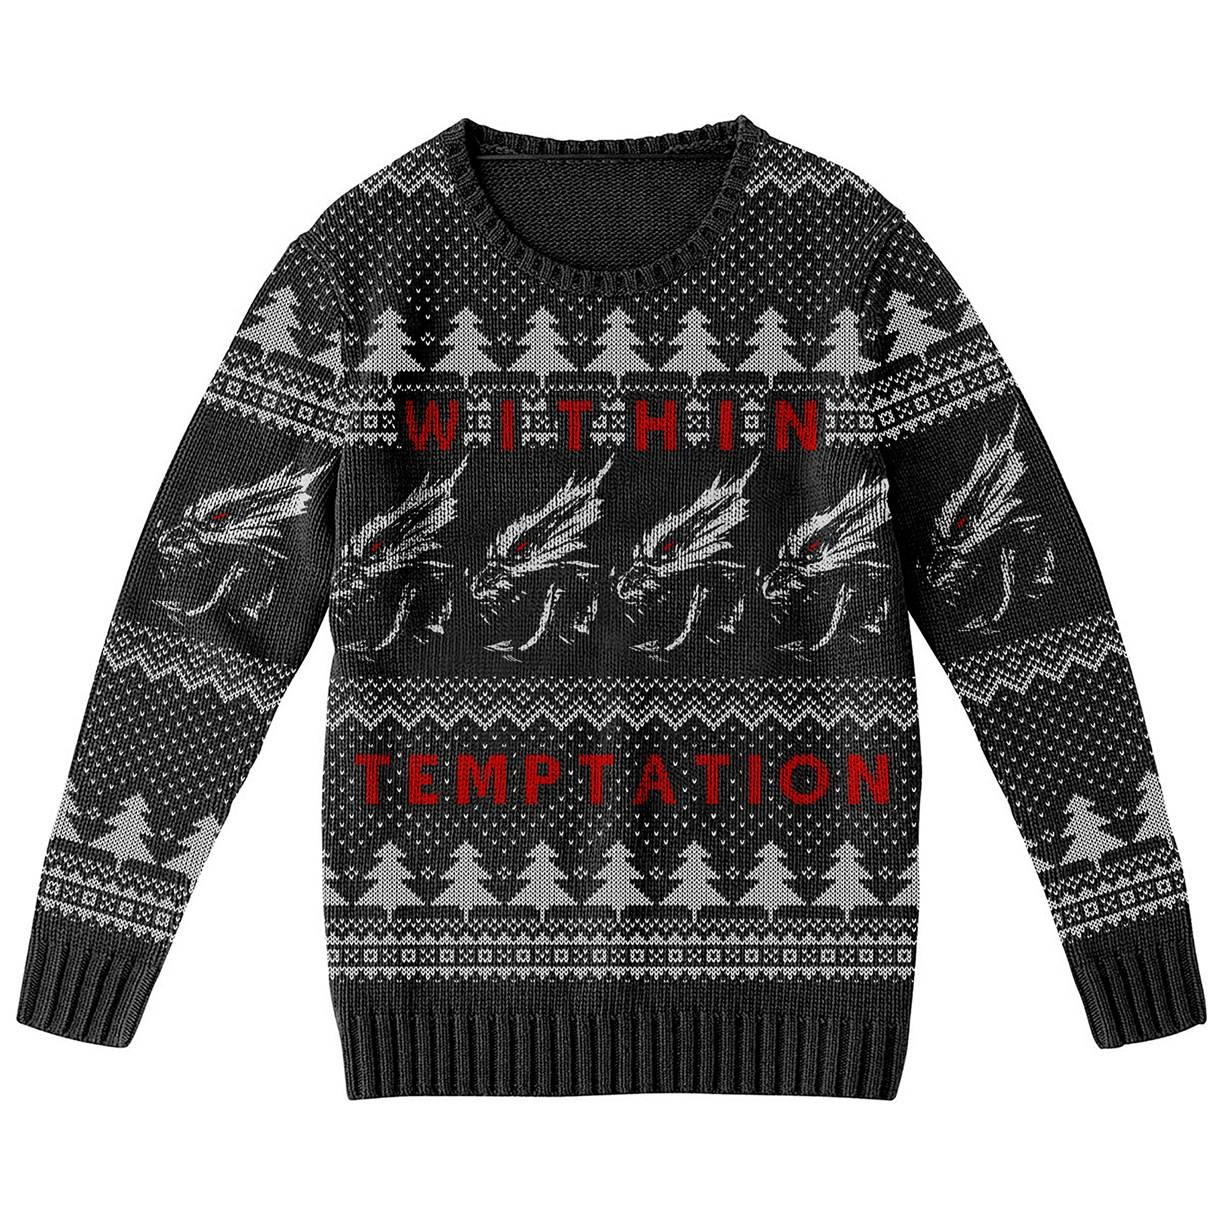 Xmas Dragons – Knitted Jumper - Within Temptation